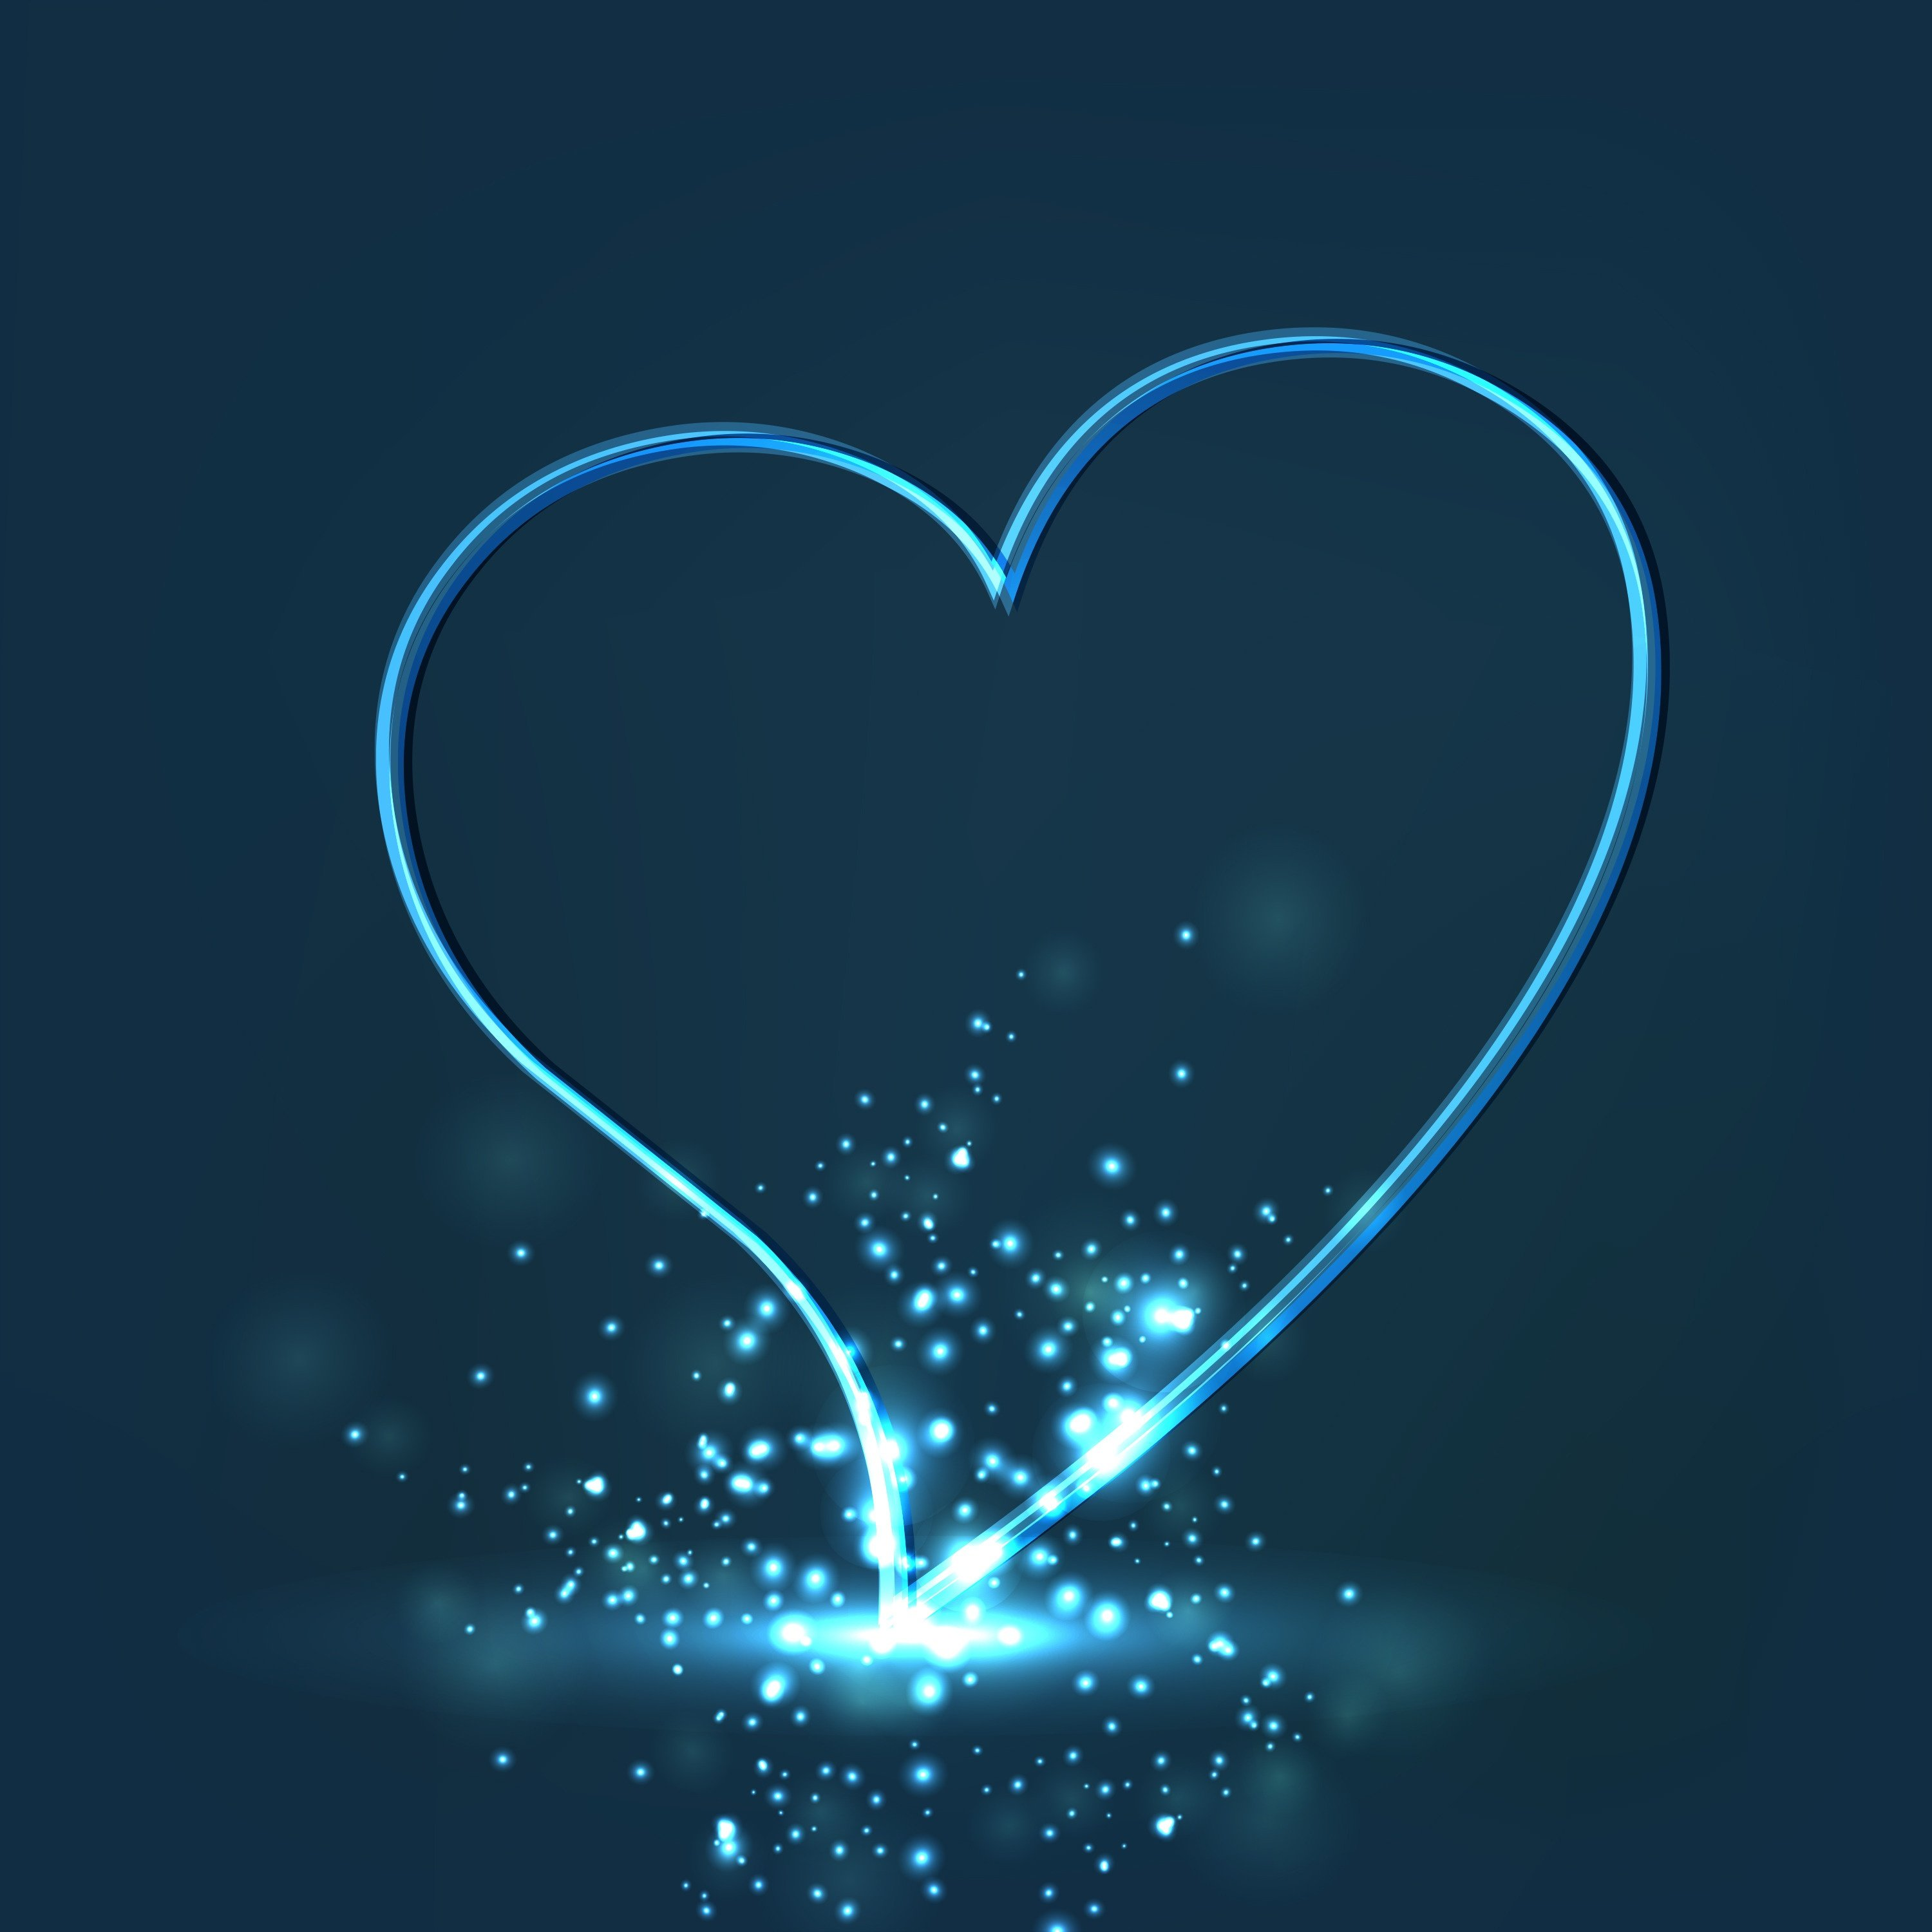 Shiny Blue Heart in Article on Trafficking within the Child Welfare Population